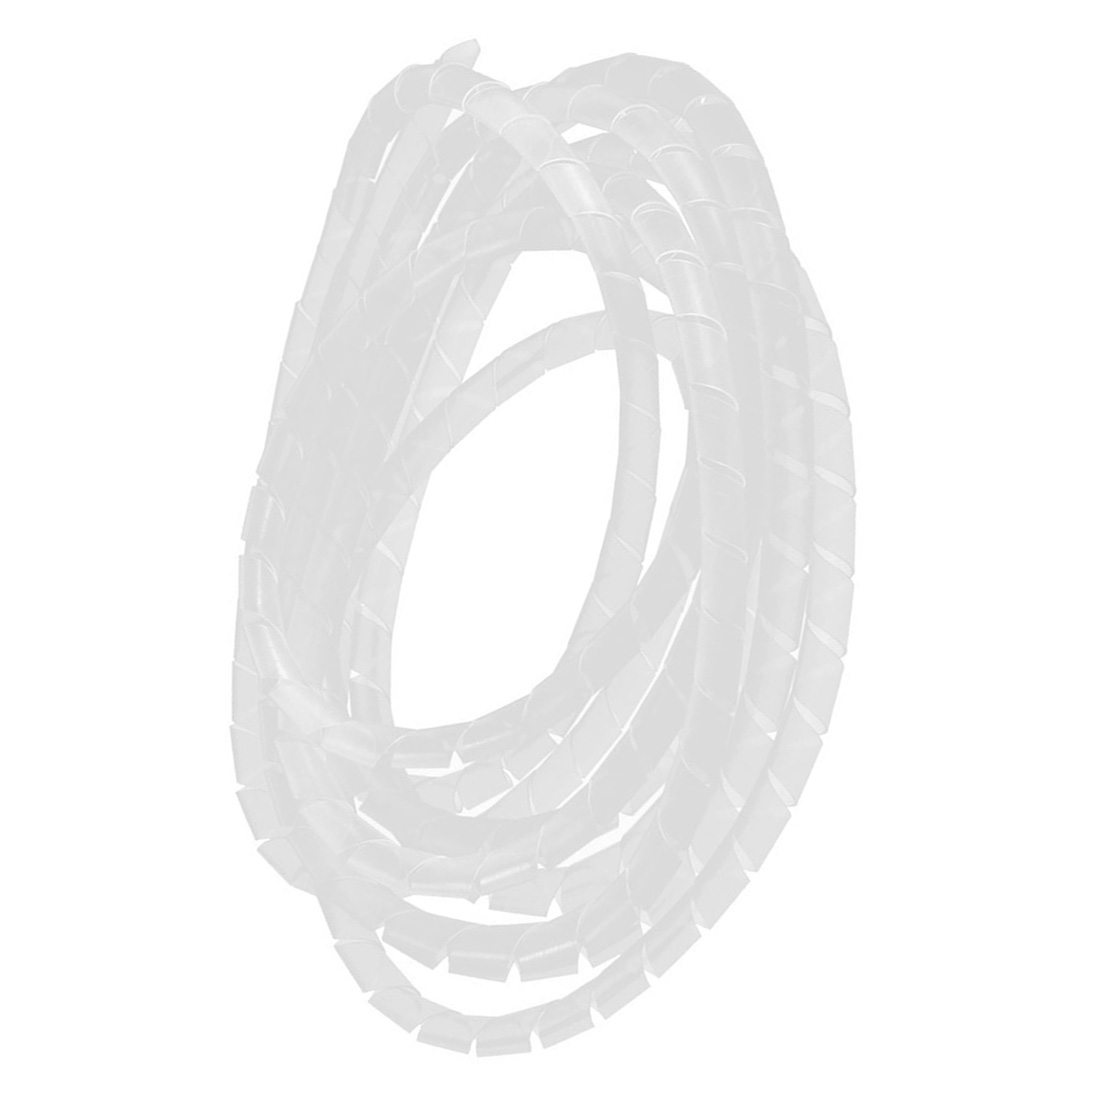 2pcs 10ft Long 8mm x 7mm White Flexible Wire Spiral Wrap Cable ...